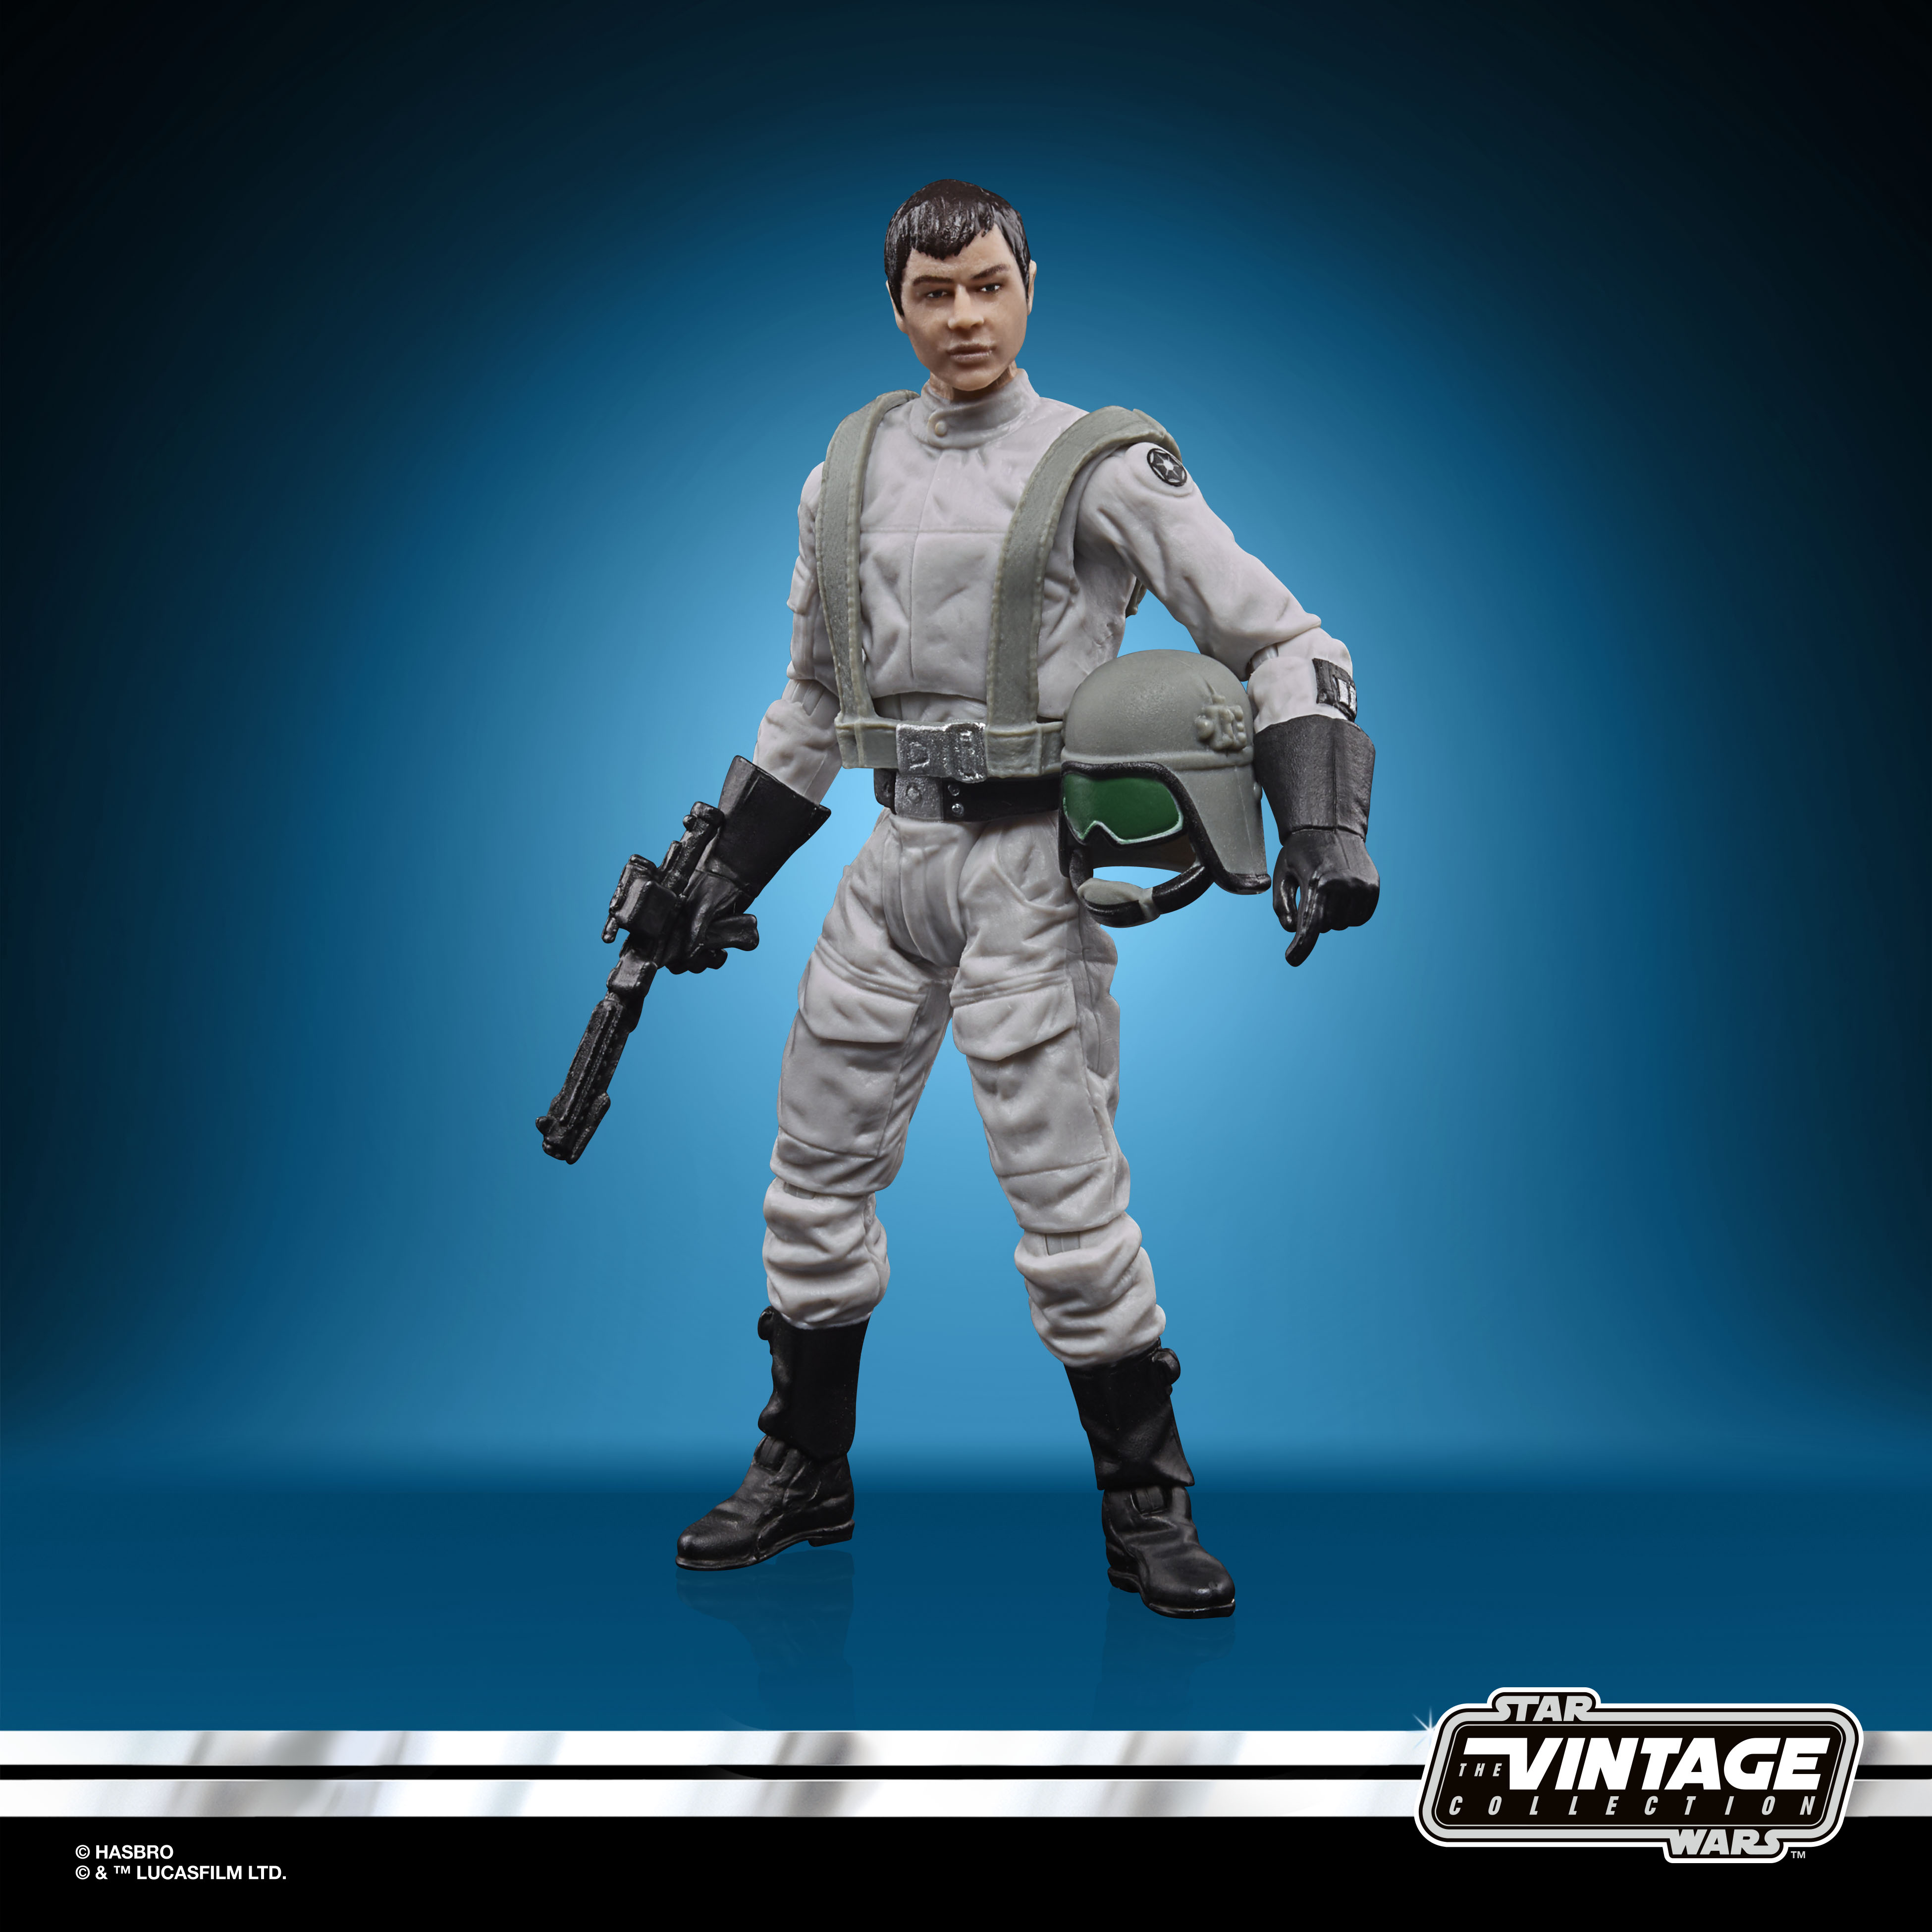 STAR WARS THE VINTAGE COLLECTION LUCASFILM FIRST 50 YEARS 3.75-INCH AT-ST DRIVER Figure – oop(1)